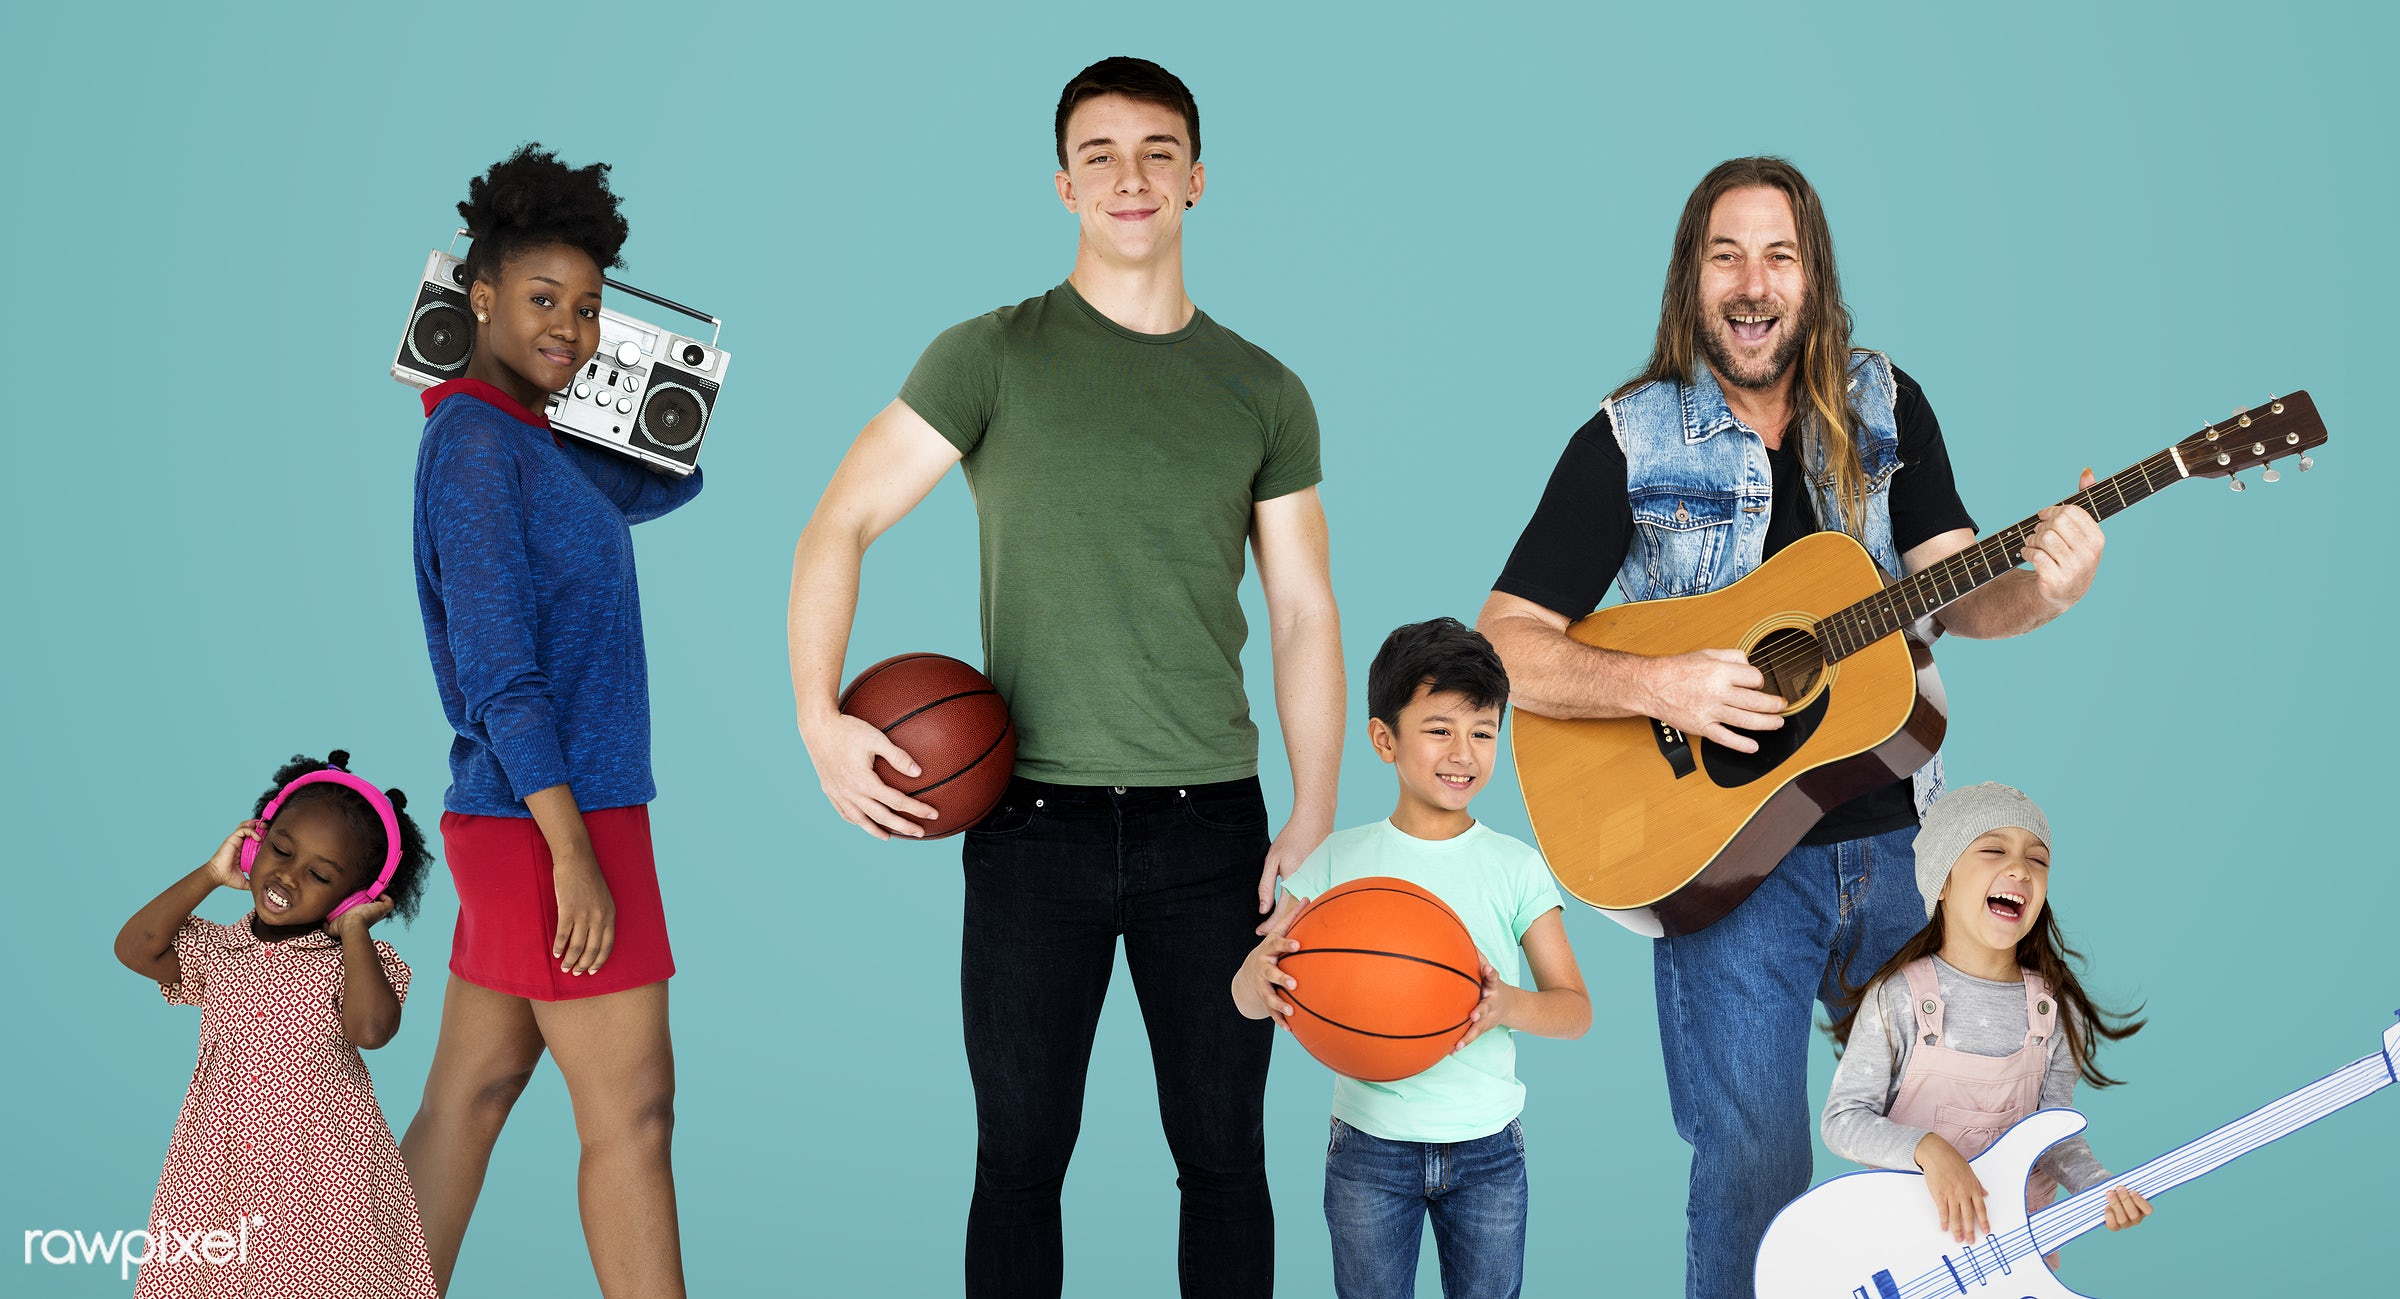 basketball, studio, person, diverse, entertain, recreation, people, young adult, woman, lifestyle, studio squareset,...